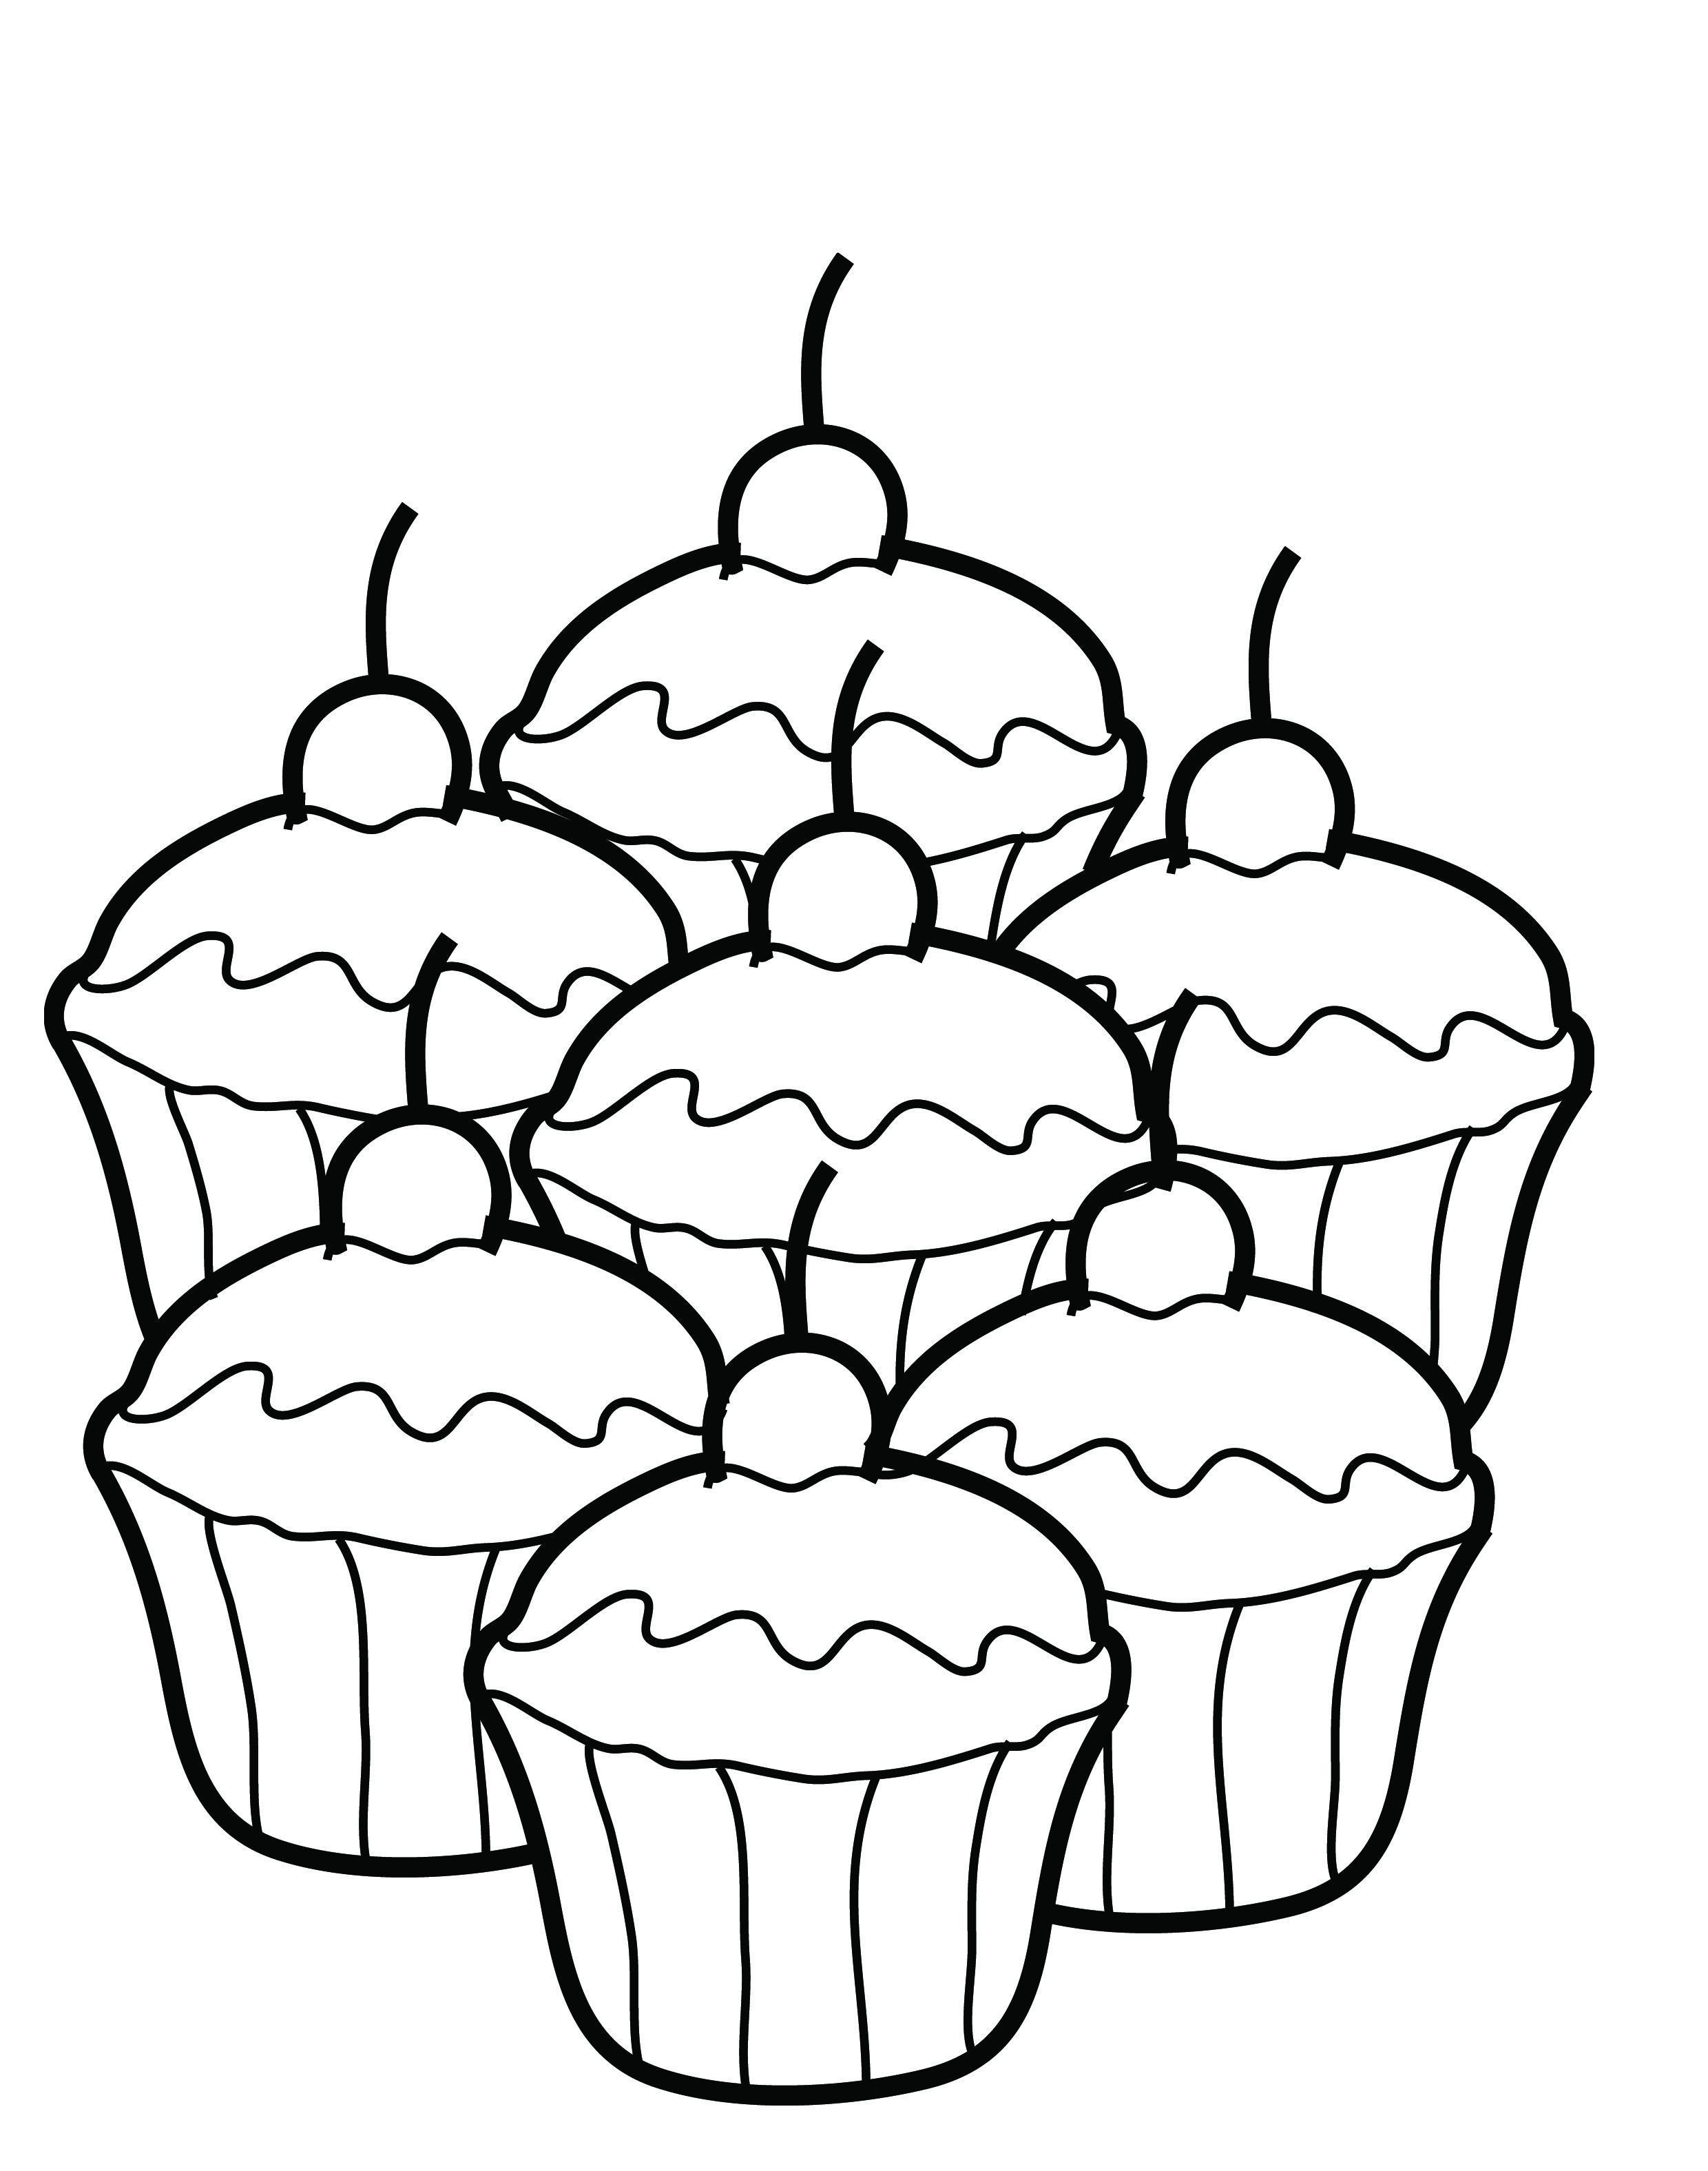 cupcake coloring pages for kids - Coloring Pages